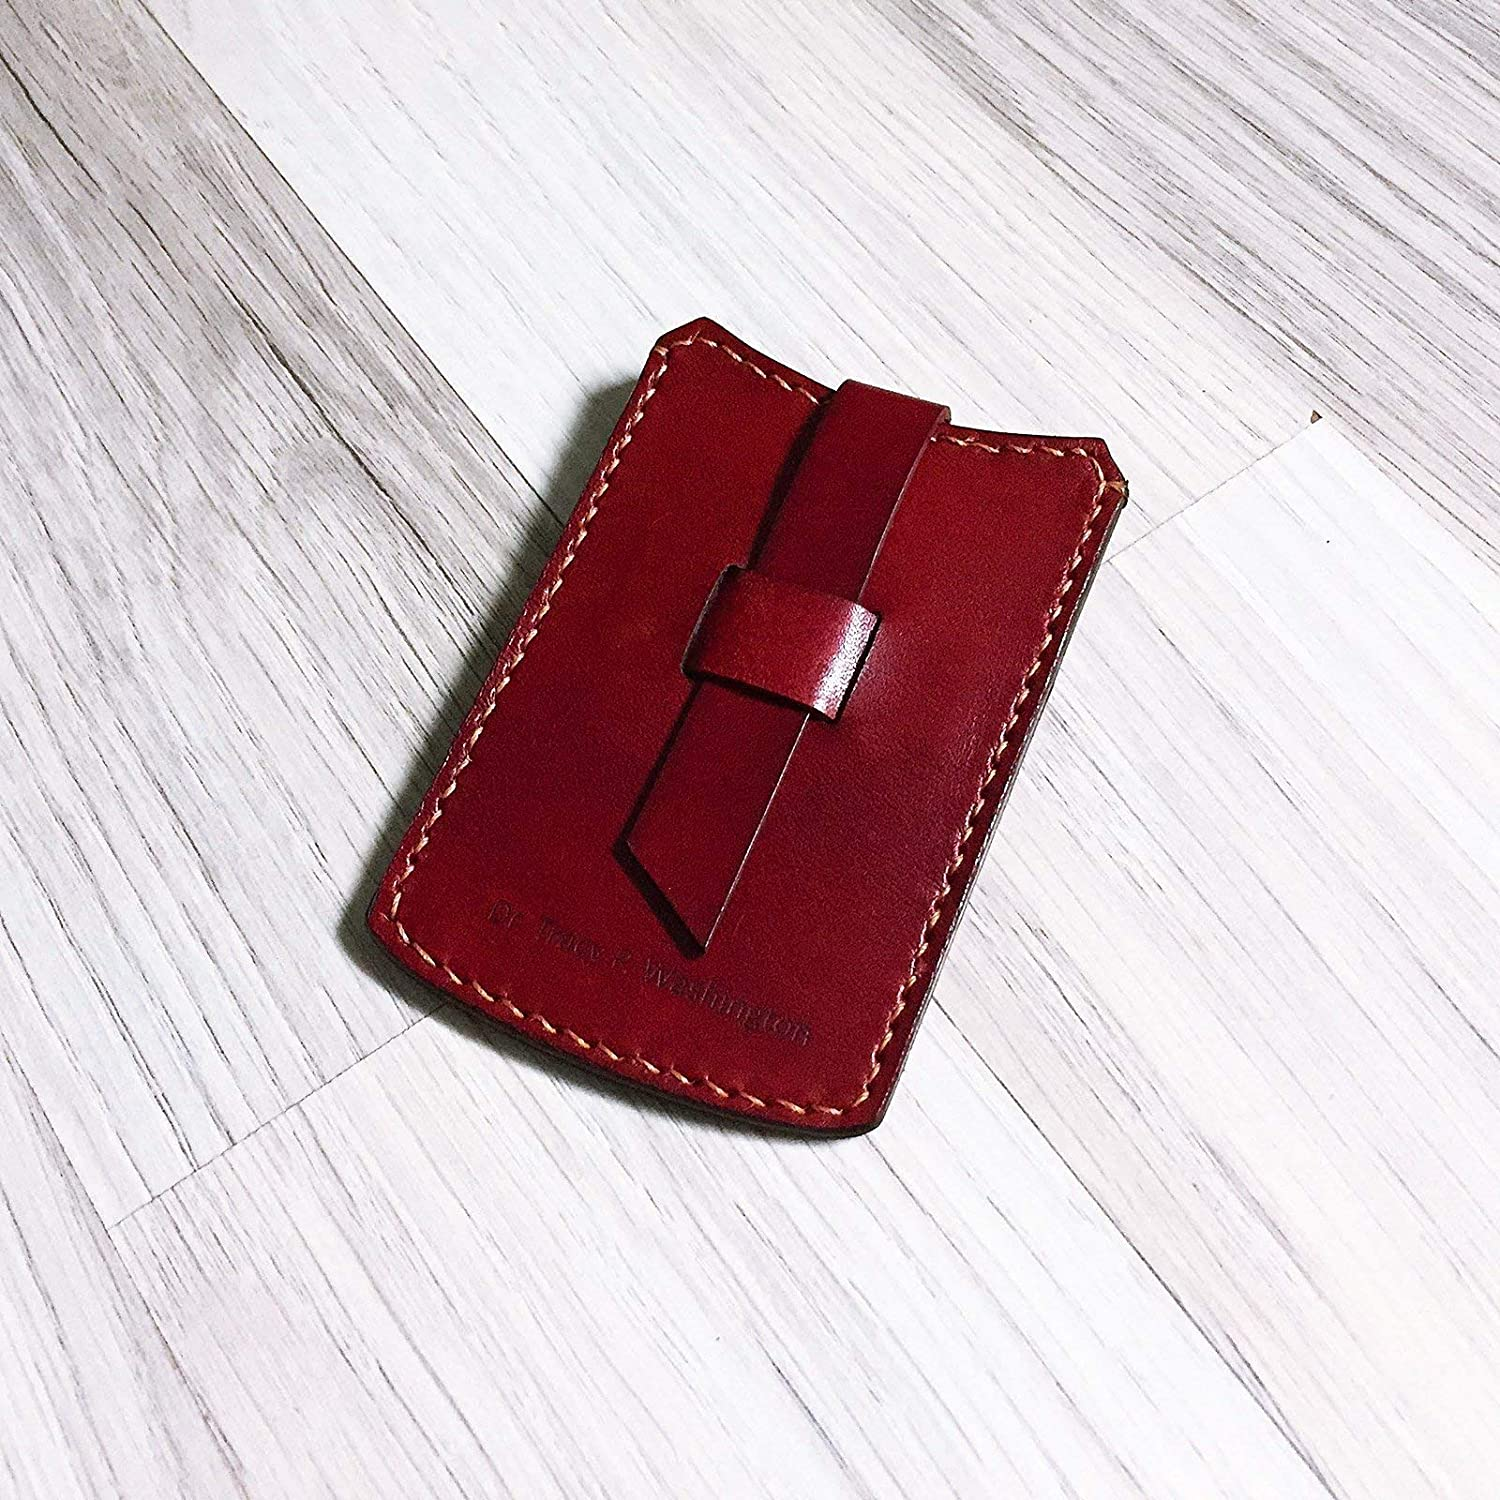 Personalized mini slim leather handmade wallet customized men New products world's highest quality New York Mall popular na